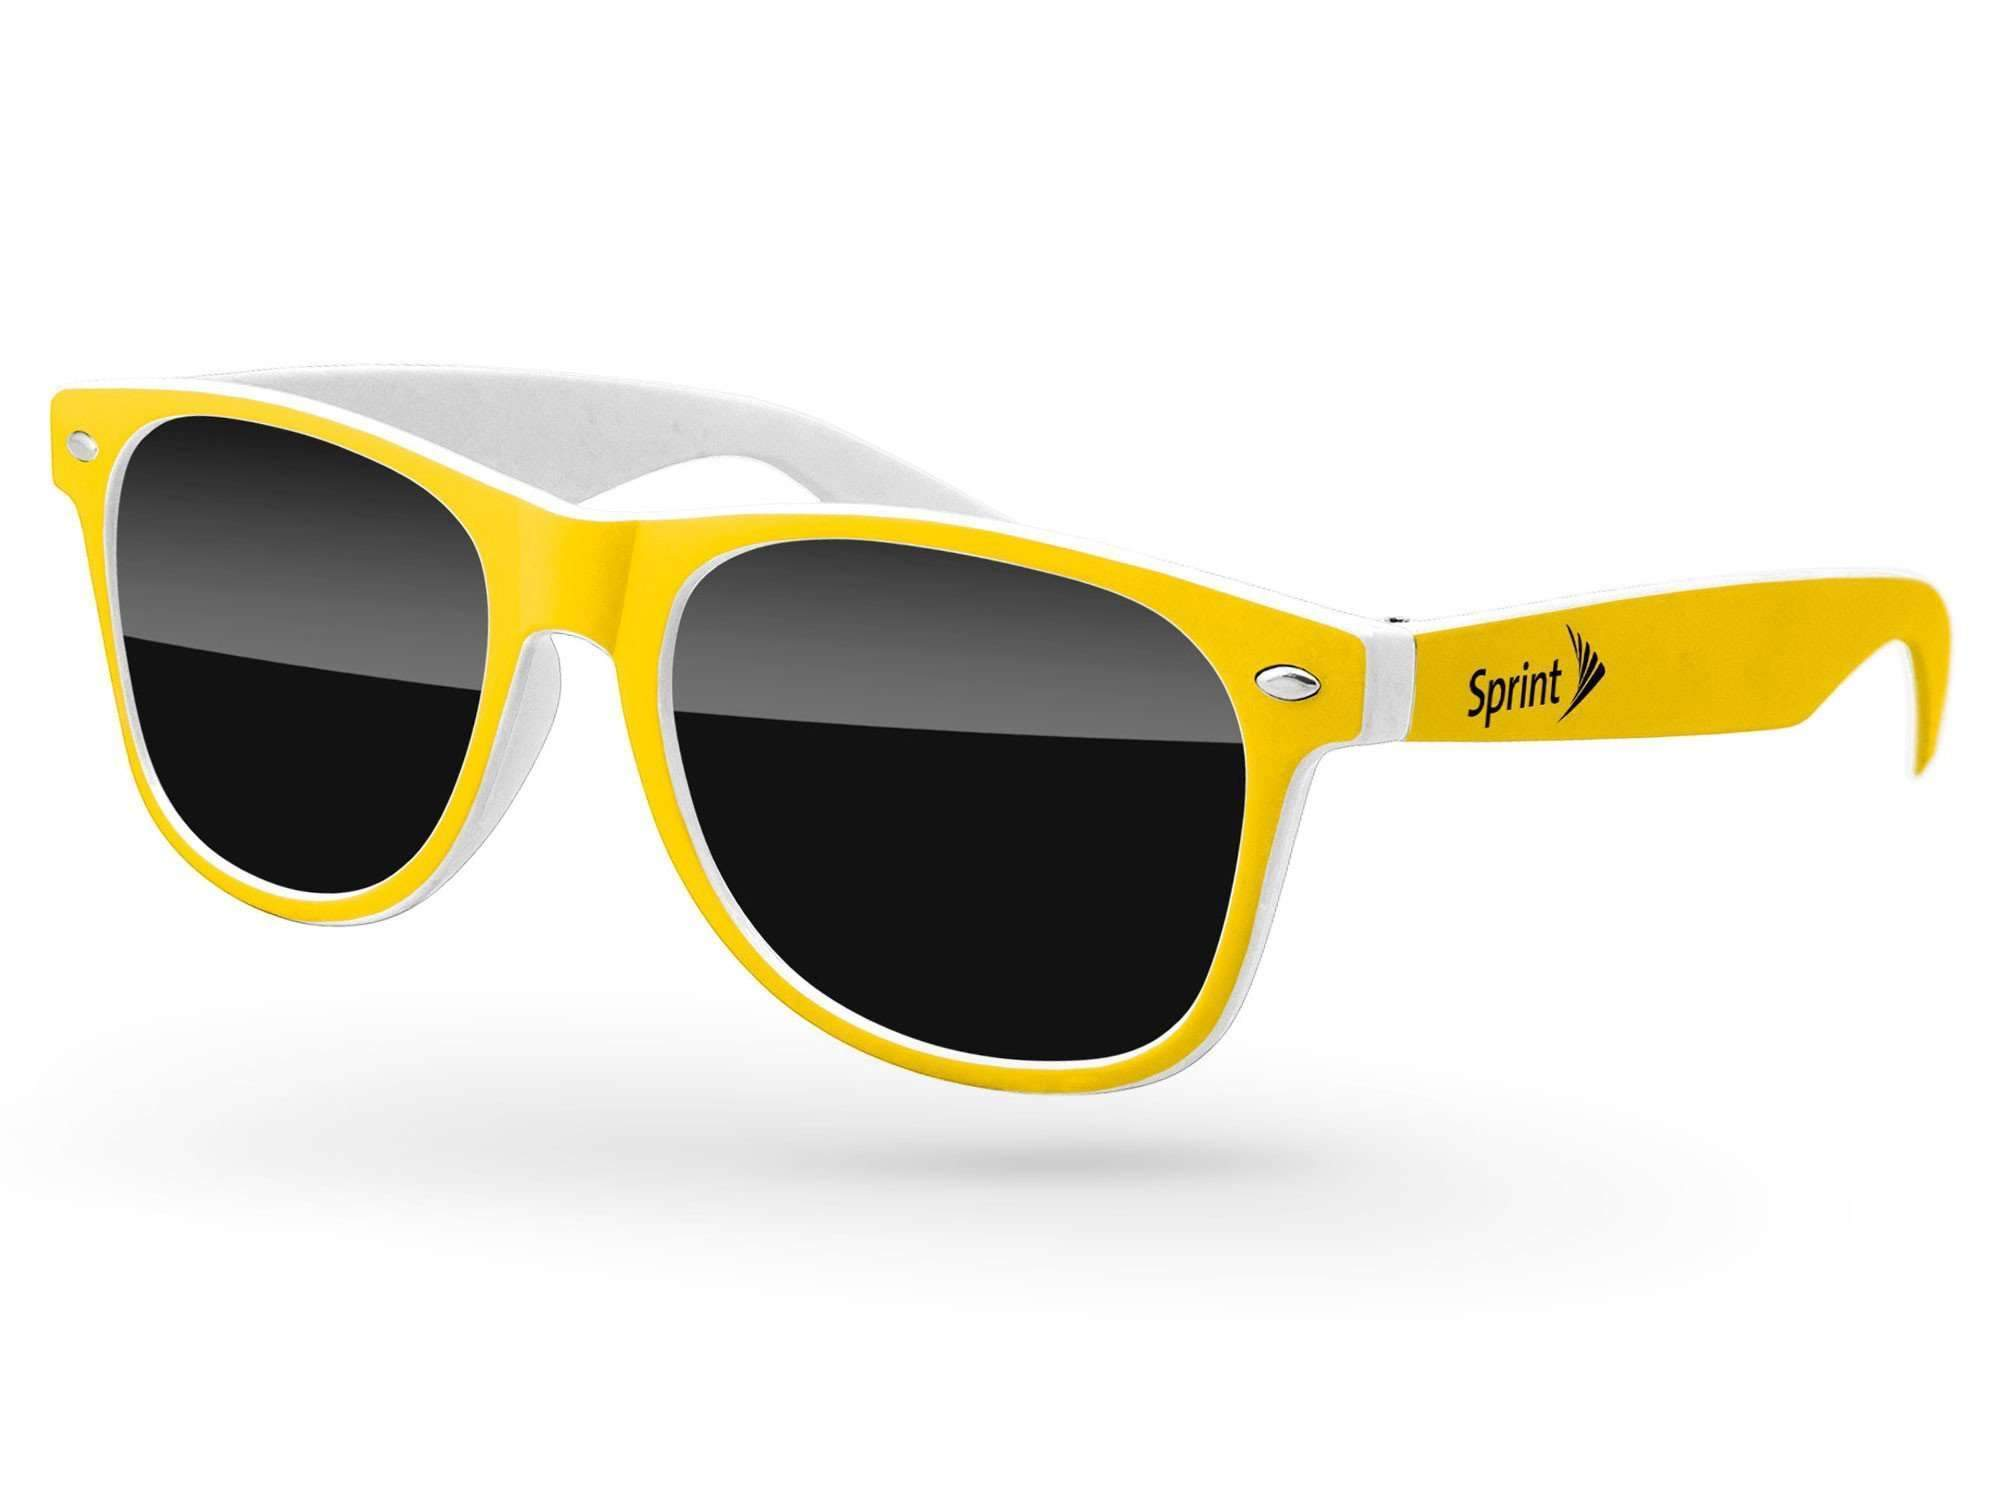 2-tone Retro Promotional Sunglasses w/ 1-color temple imprint